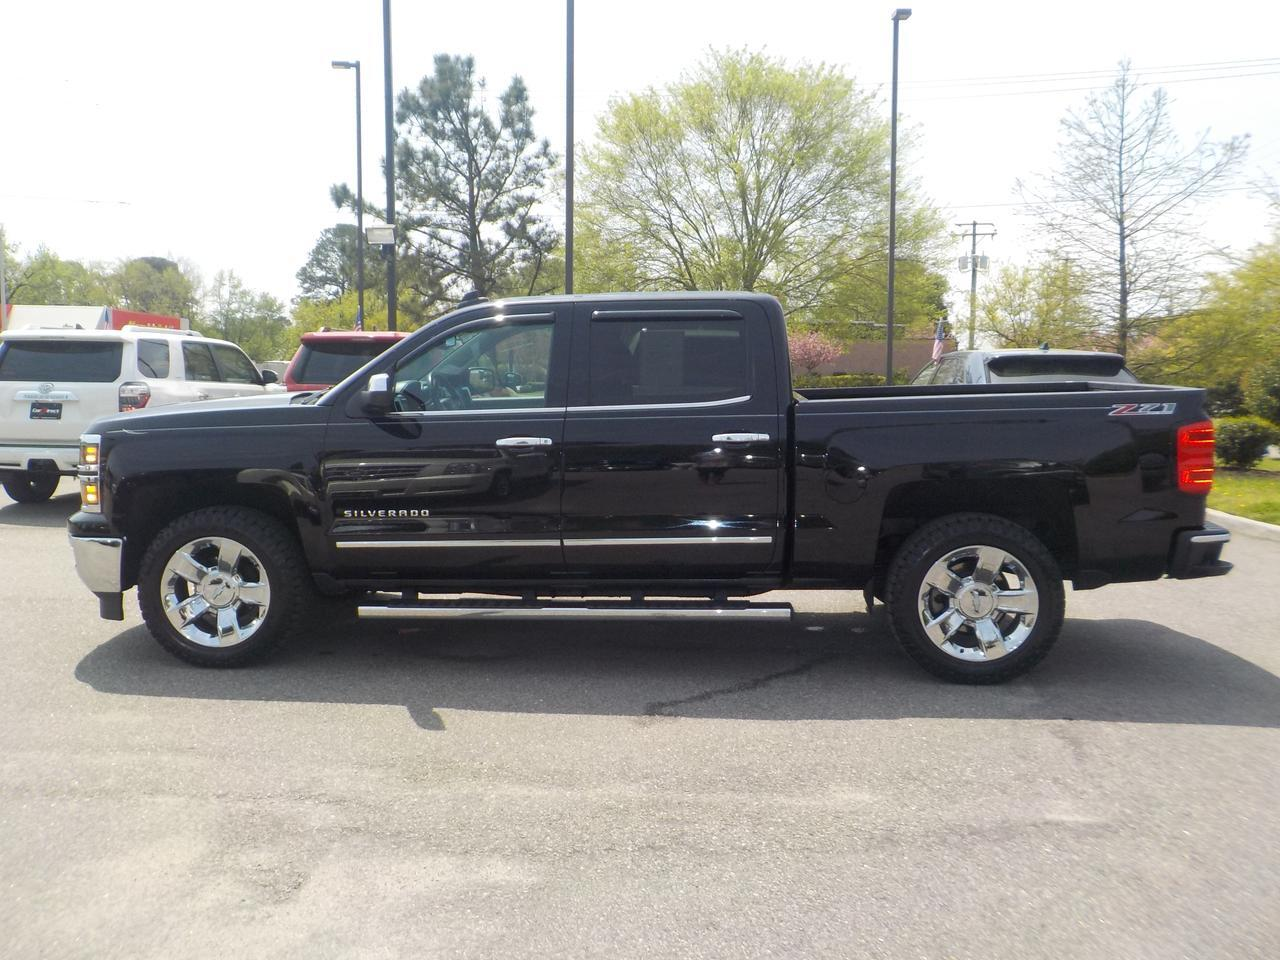 2015 CHEVROLET SILVERADO CREW CAB LTZ Z71 OFFROAD 4X4, ONE OWNER, LEATHER, BOSE SPEAKERS, NAVI, REMOTE START,  TOW PACKAGE! Virginia Beach VA